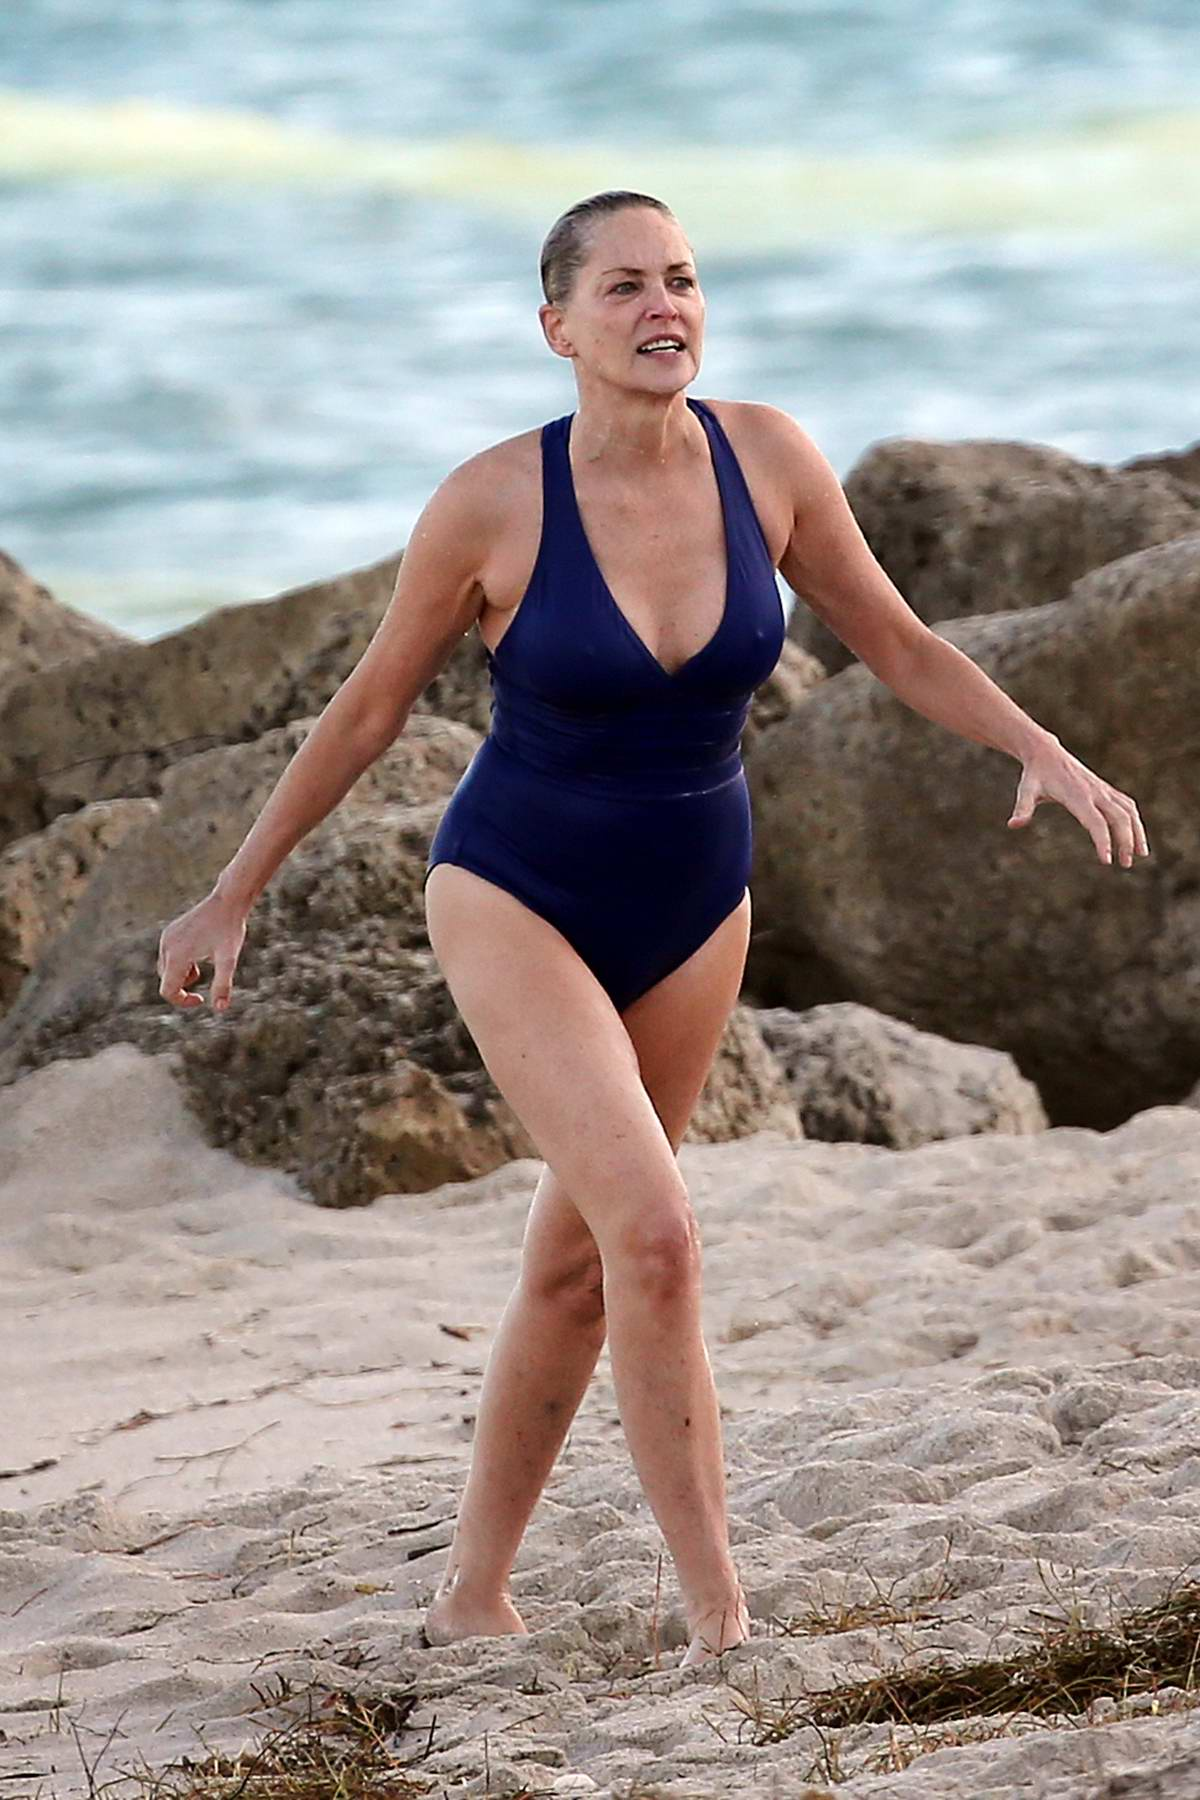 Sharon Stone in a blue swimsuit enjoying the beach in Miami, Florida